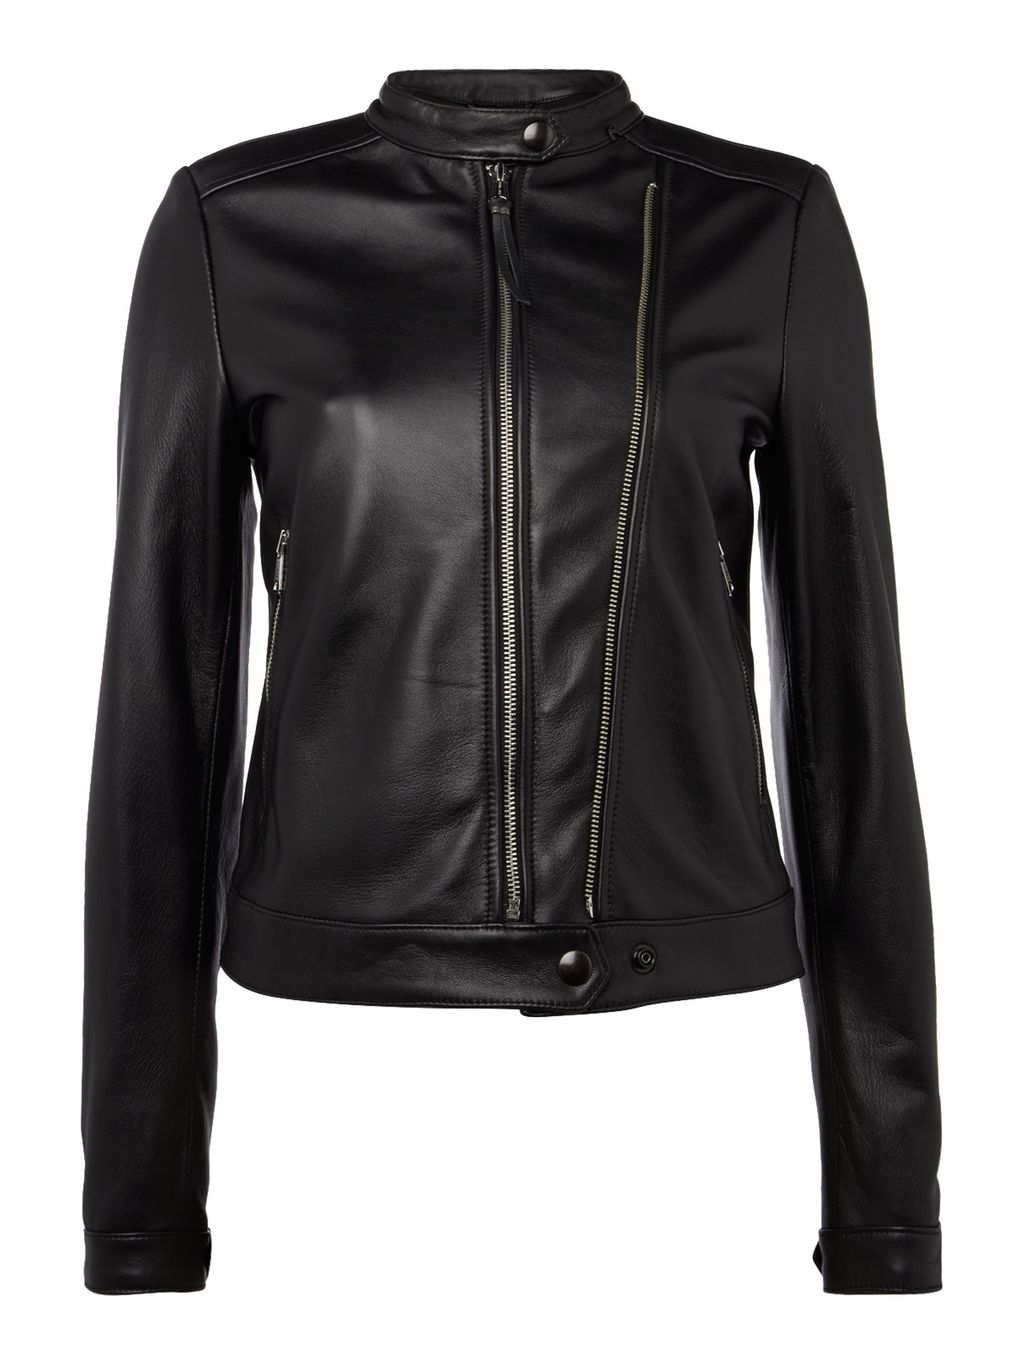 Calfskin Biker Jacket, Black - pattern: plain; style: biker; collar: standard biker; fit: slim fit; predominant colour: black; occasions: casual, creative work; length: standard; fibres: leather - 100%; sleeve length: long sleeve; sleeve style: standard; texture group: leather; collar break: high/illusion of break when open; pattern type: fabric; season: s/s 2016; wardrobe: basic